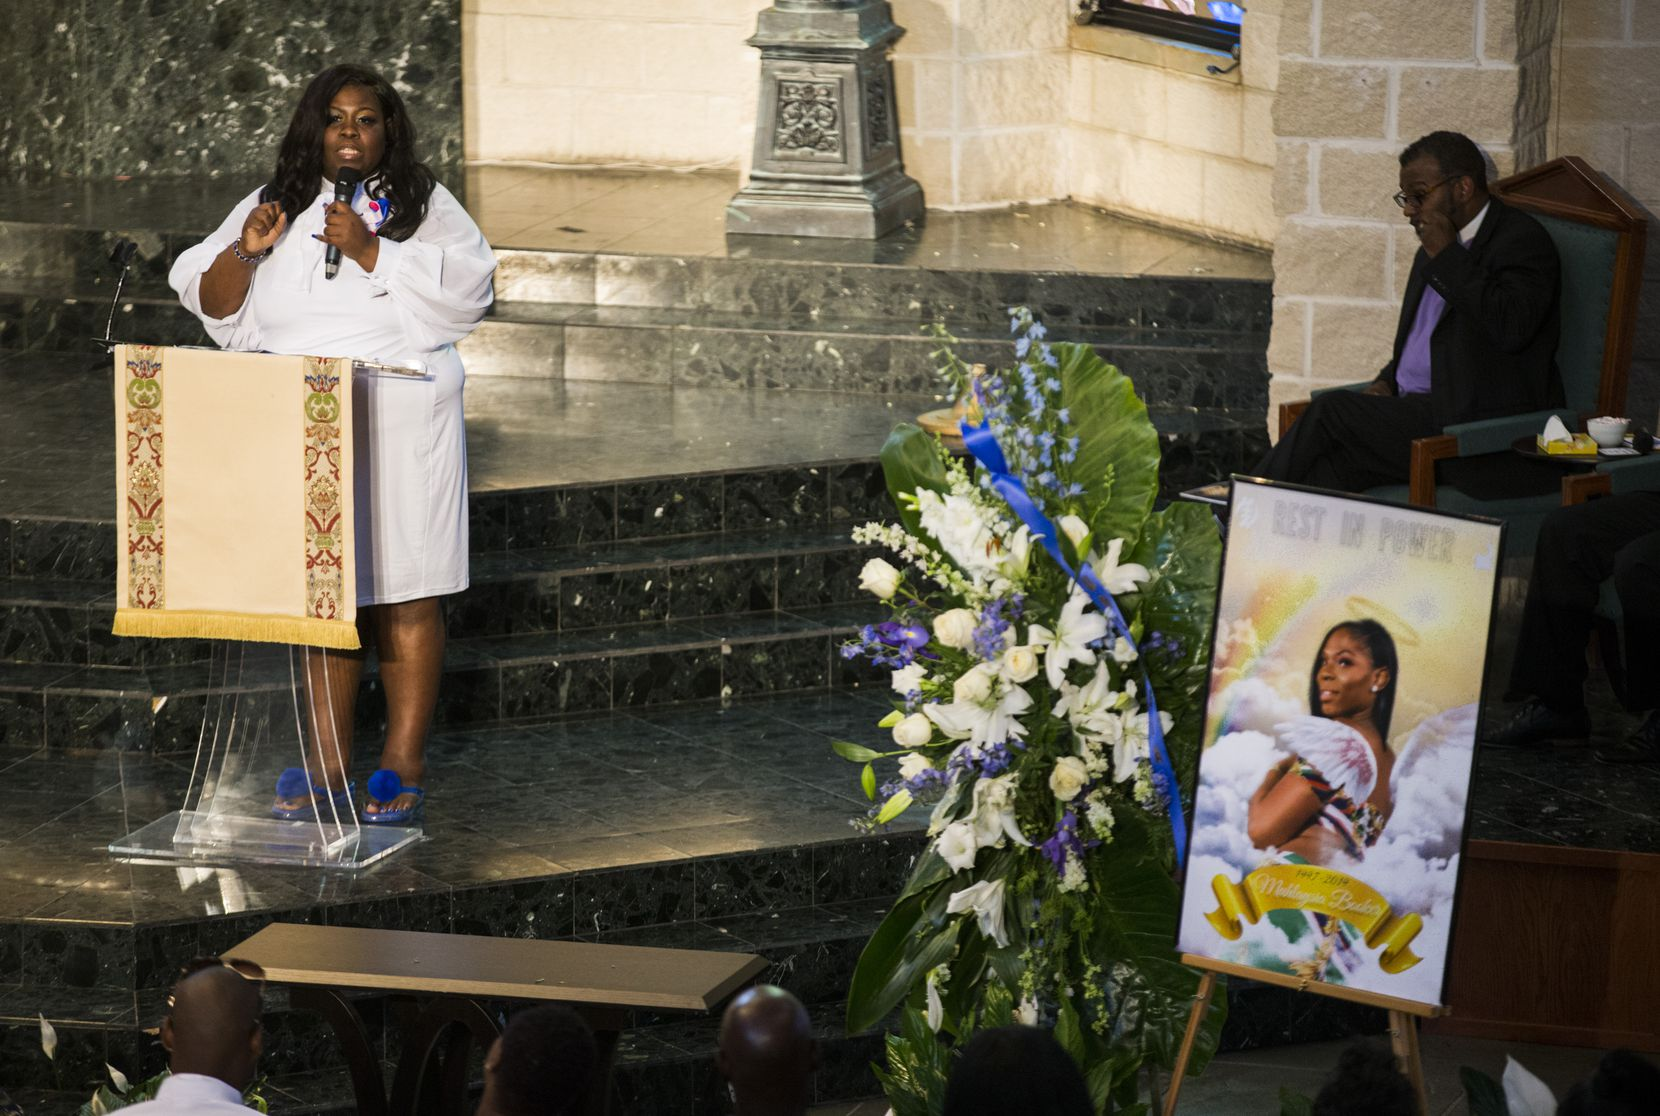 Stephanie Houston, mother of Muhlaysia Booker, speaks at her daughter's funeral service Tuesday at Cathedral of Hope in Dallas. Booker was a transgender woman who was shot and killed May 18 in Far East Dallas.